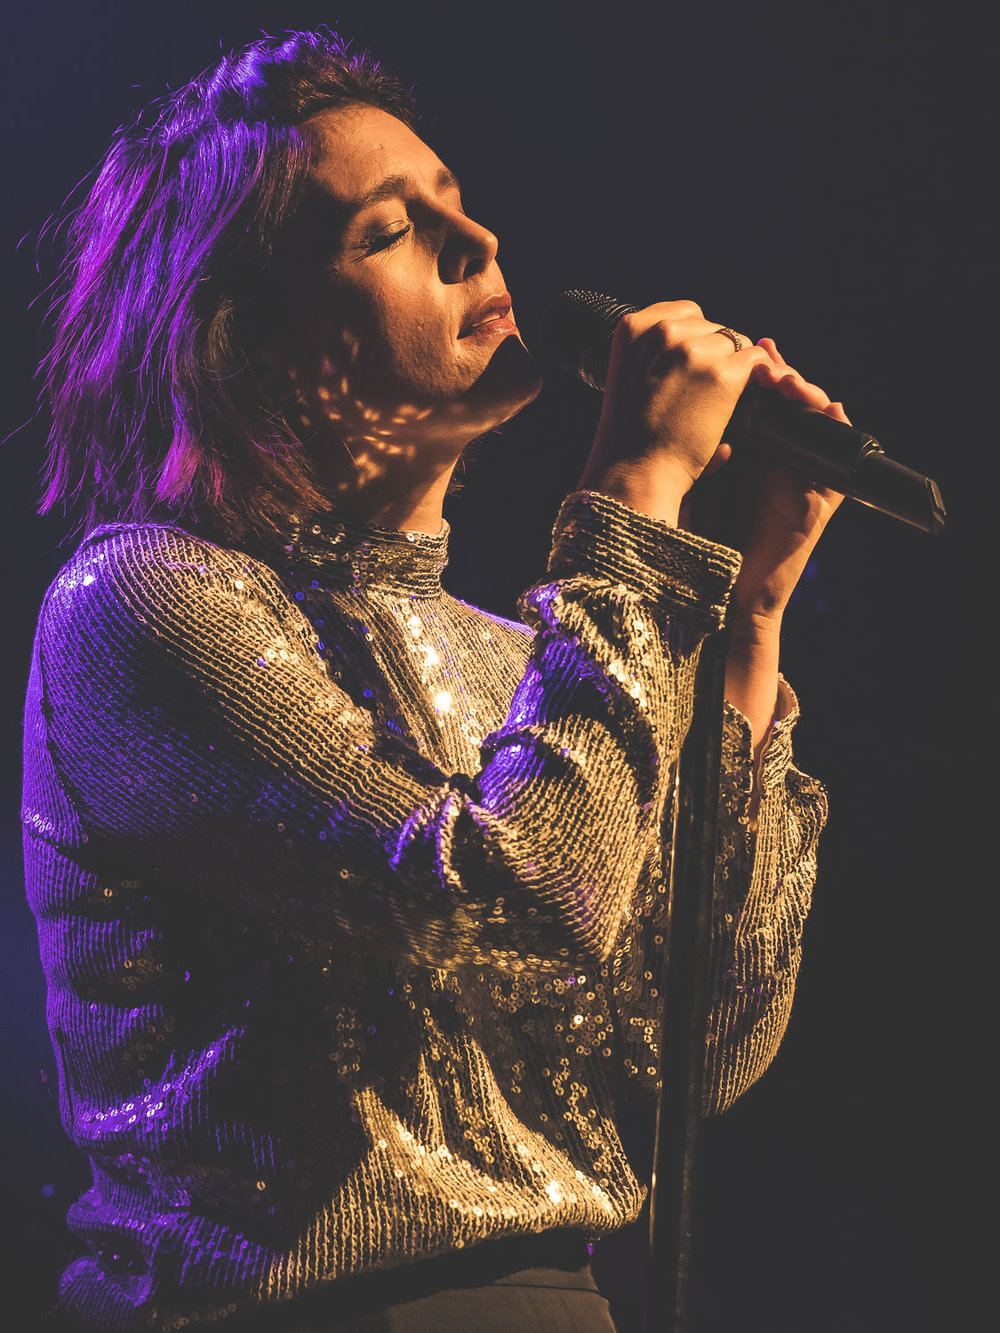 jessie_ware_110117_the_independent-3.jpg